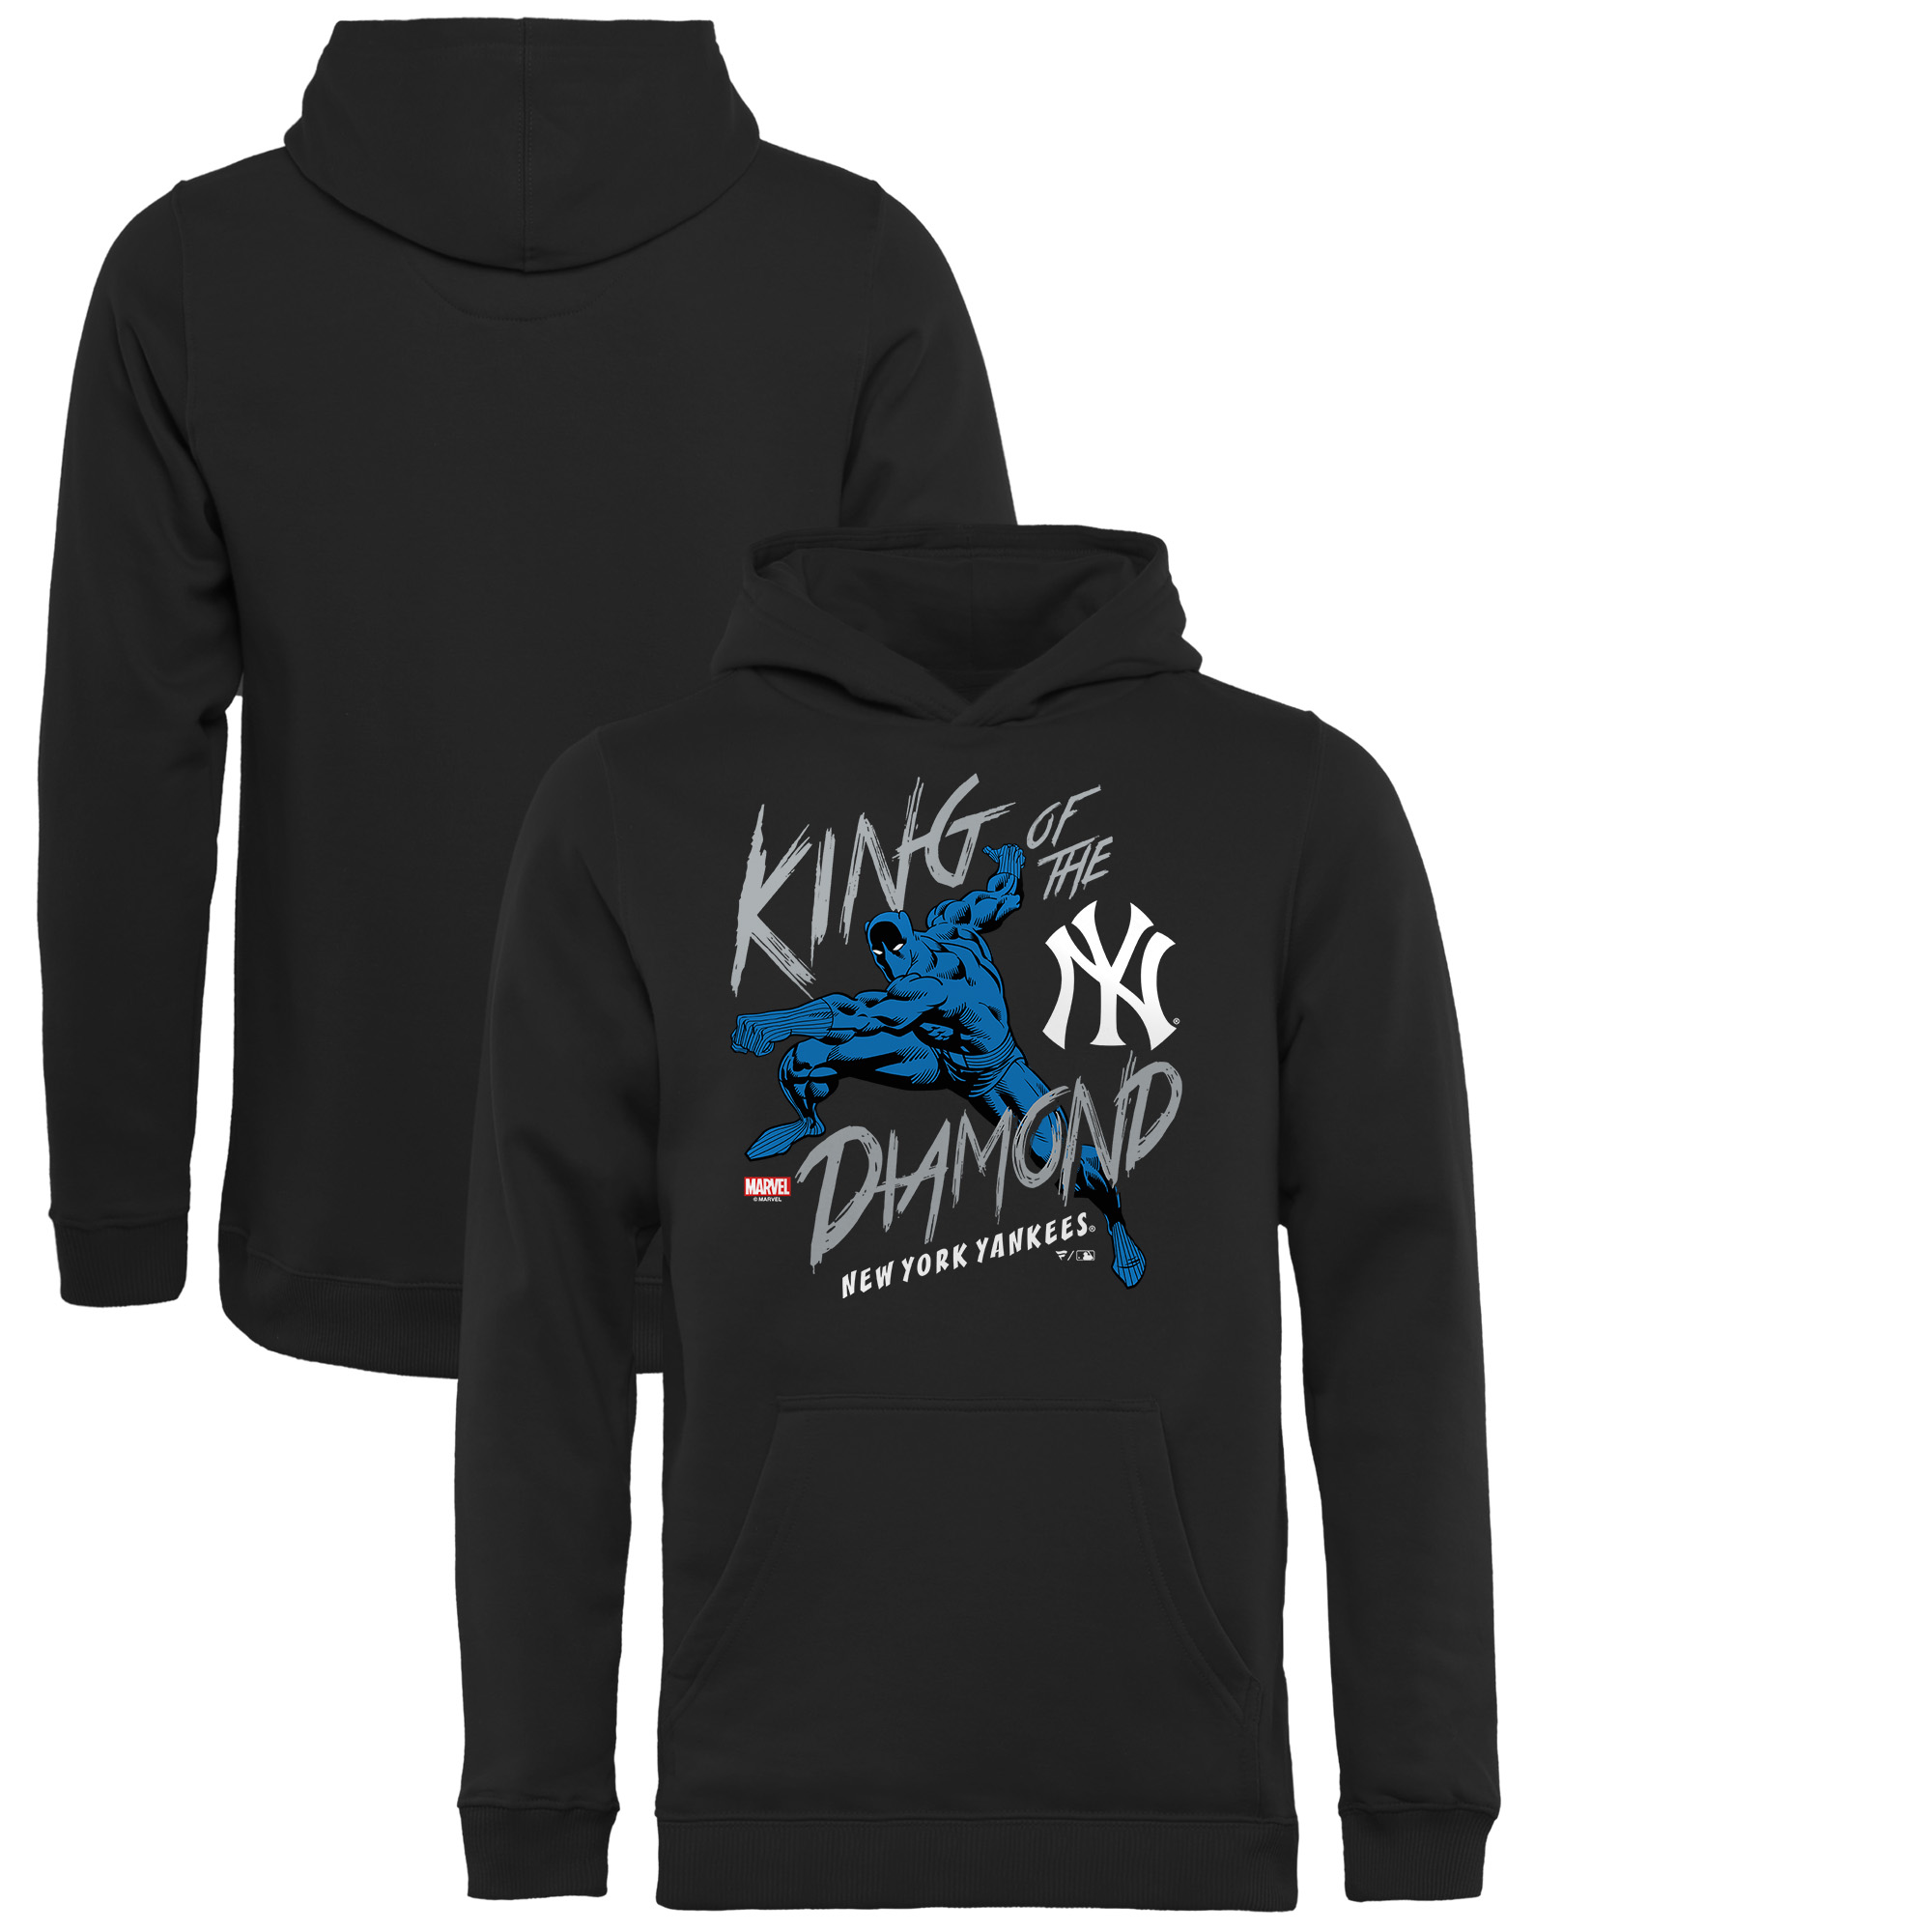 New York Yankees Fanatics Branded Youth MLB Marvel Black Panther King of the Diamond Pullover Hoodie - Black